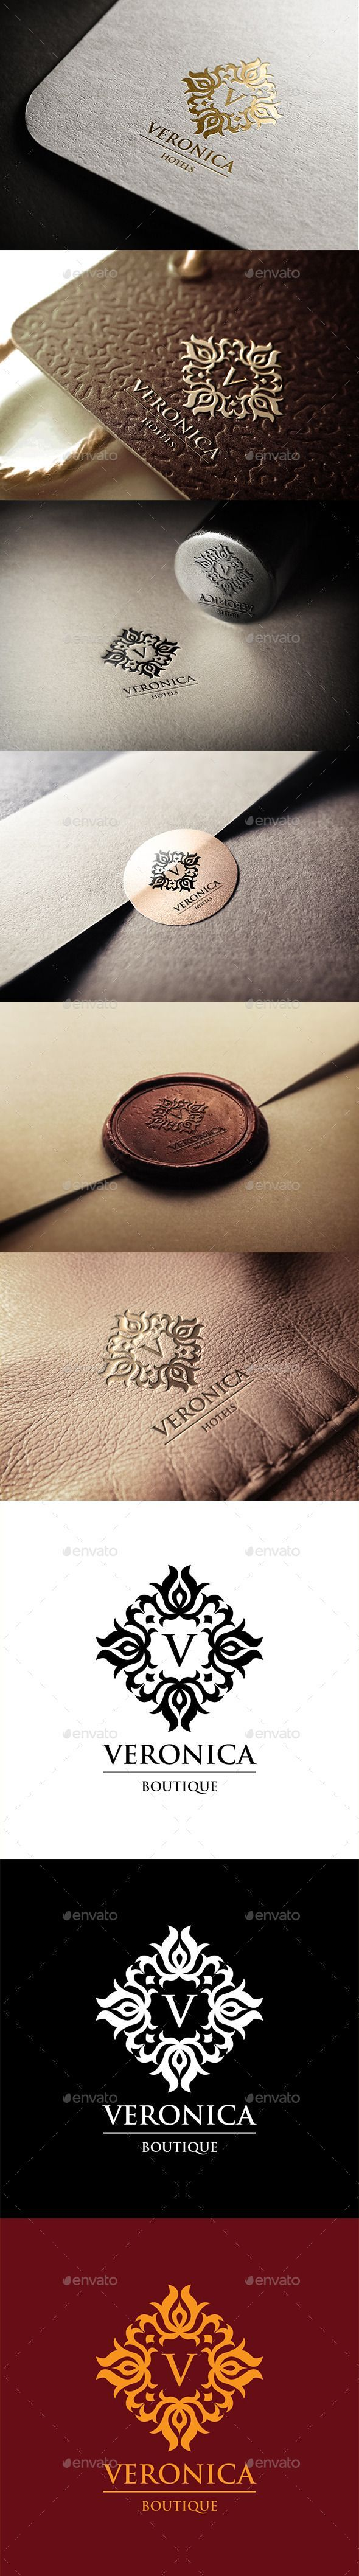 Veronica Hotels Logo Template #design #logotype Download: http://graphicriver.net/item/veronica-hotels-logo/11256338?ref=ksioks